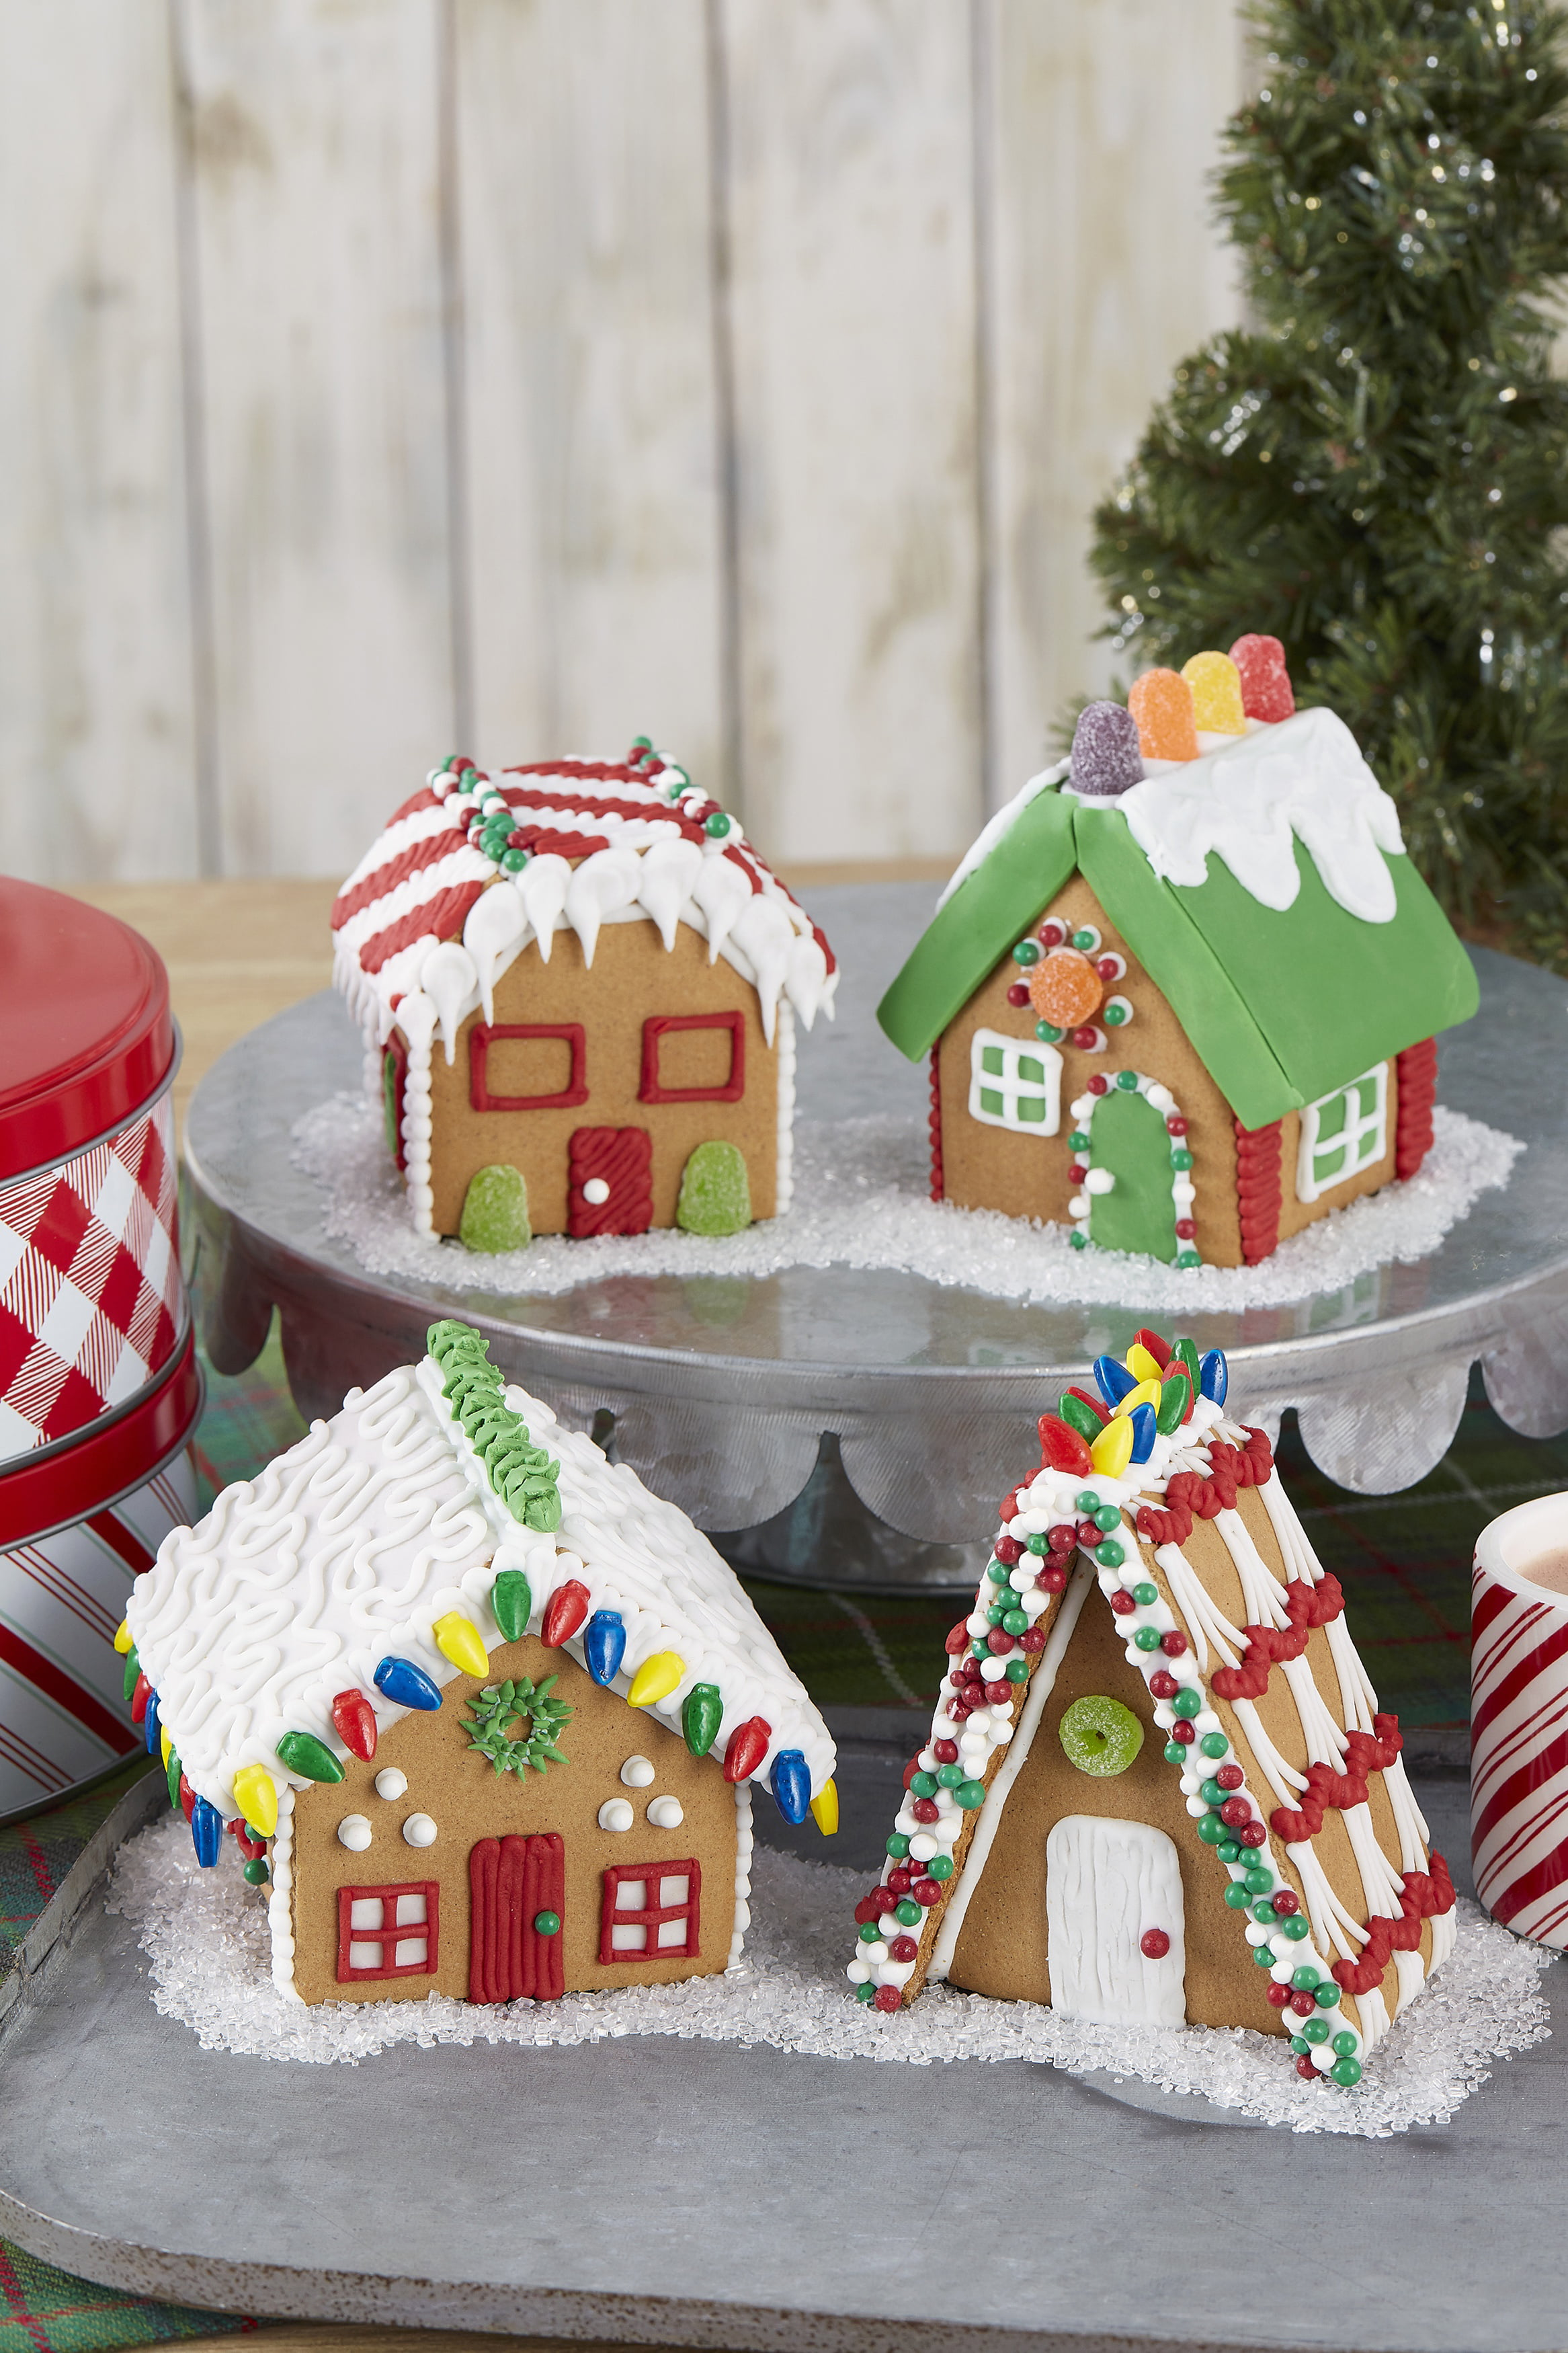 Christmas Gingerbread House Kit.Unassembled Gingerbread House Kit Mini Village